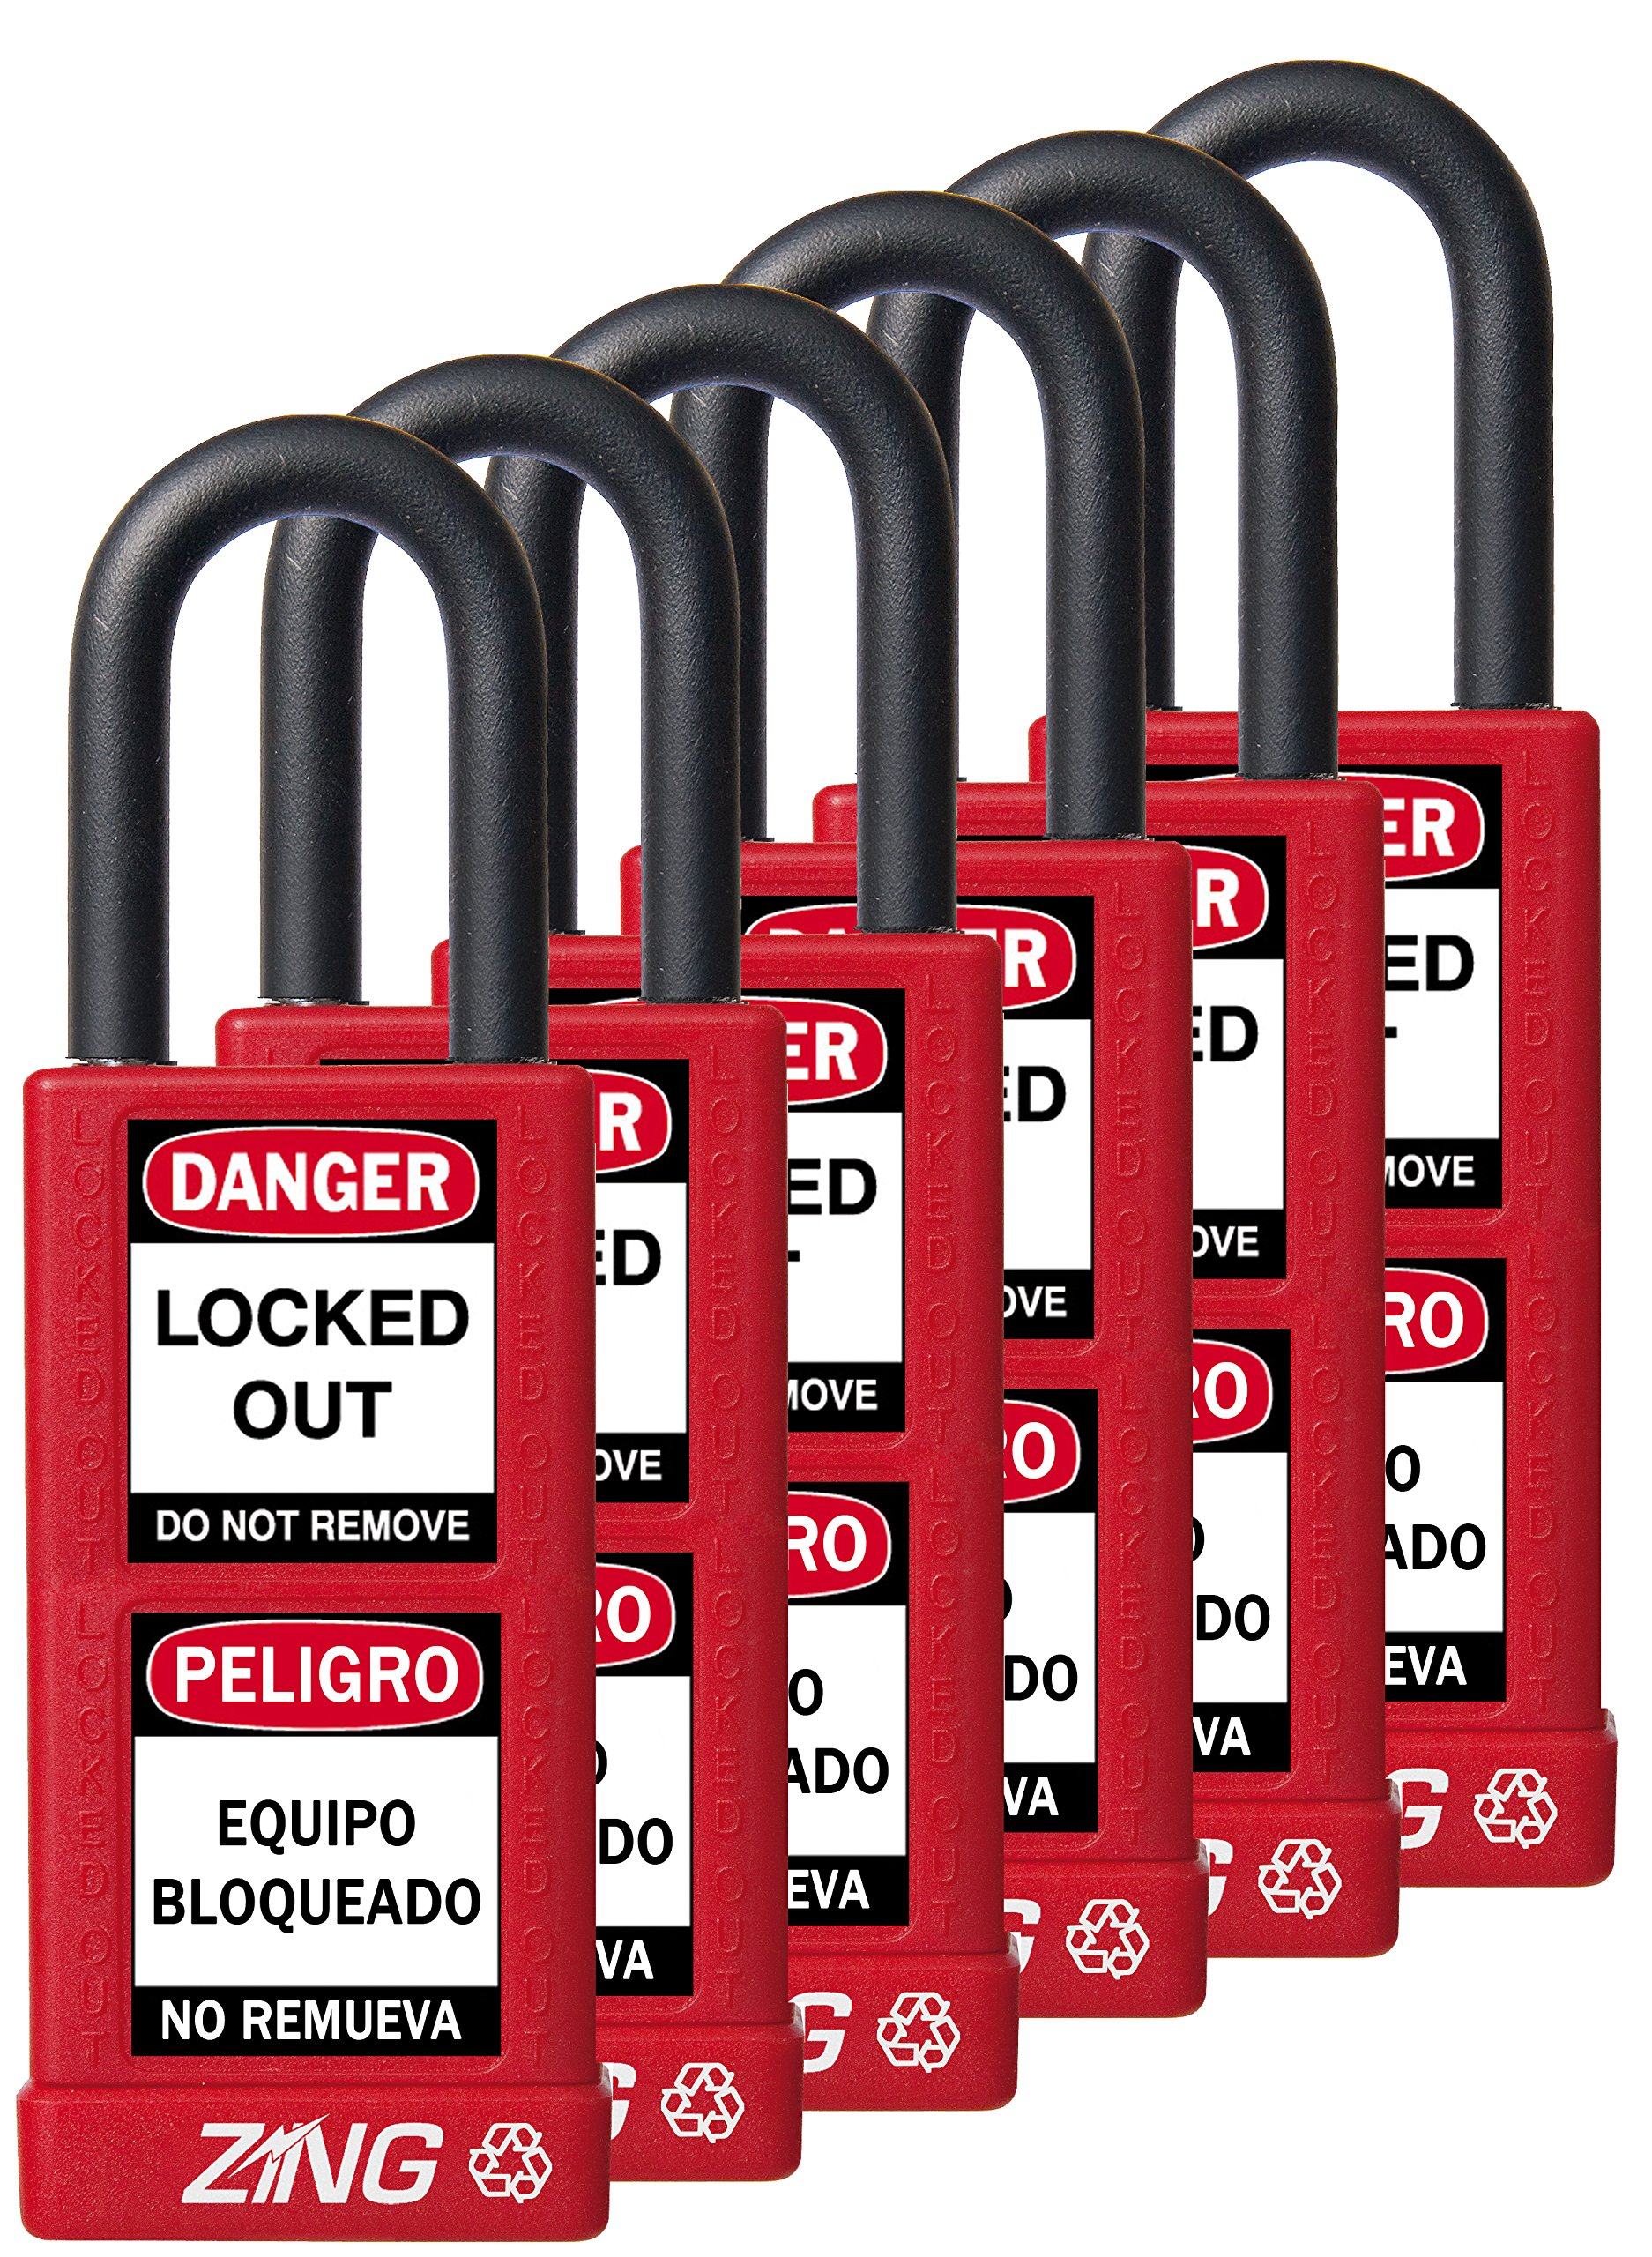 ZING 7087 RecycLock Safety Padlock, Keyed Alike,1-1/2'' Shackle, 3'' Long Body, Red, 6 Pack